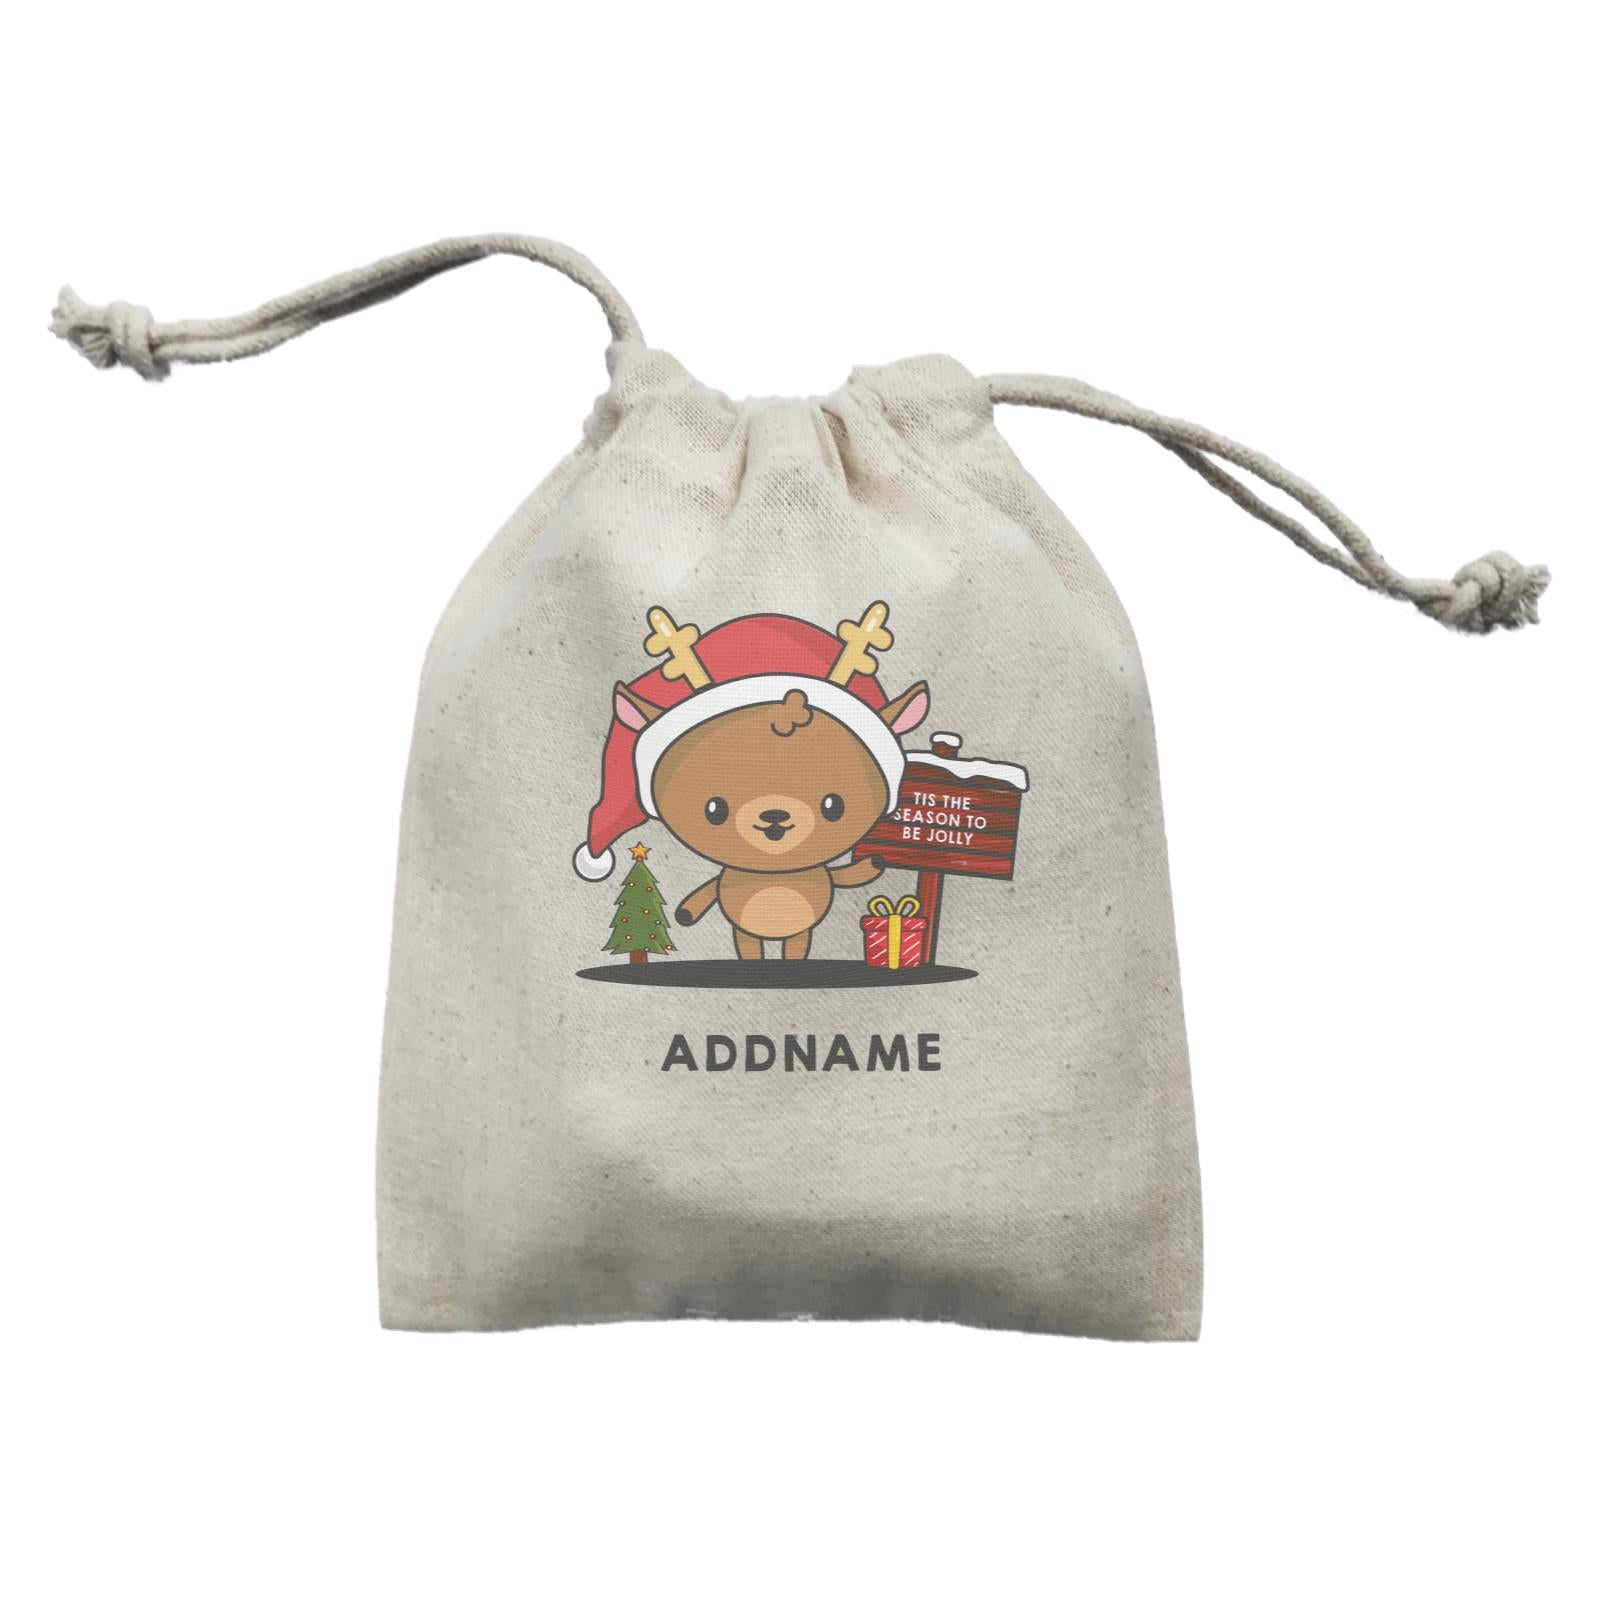 Christmas Cute Jolly Series Deer Addname Mini Accessories Mini Pouch